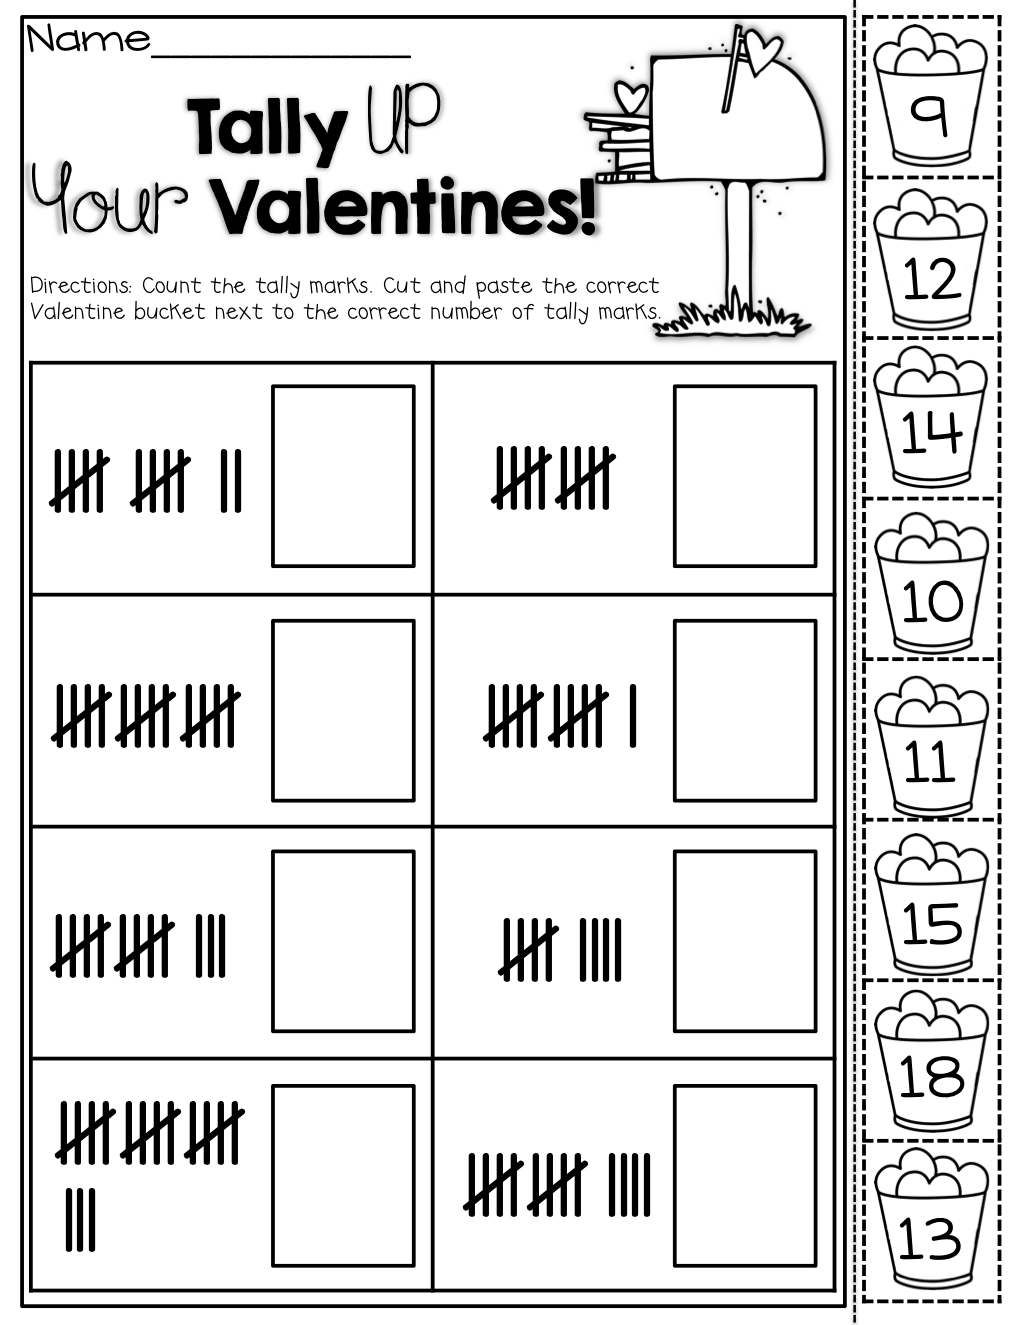 Tally Marks (cut and paste) for Valentines! | Teaching | Pinterest ...